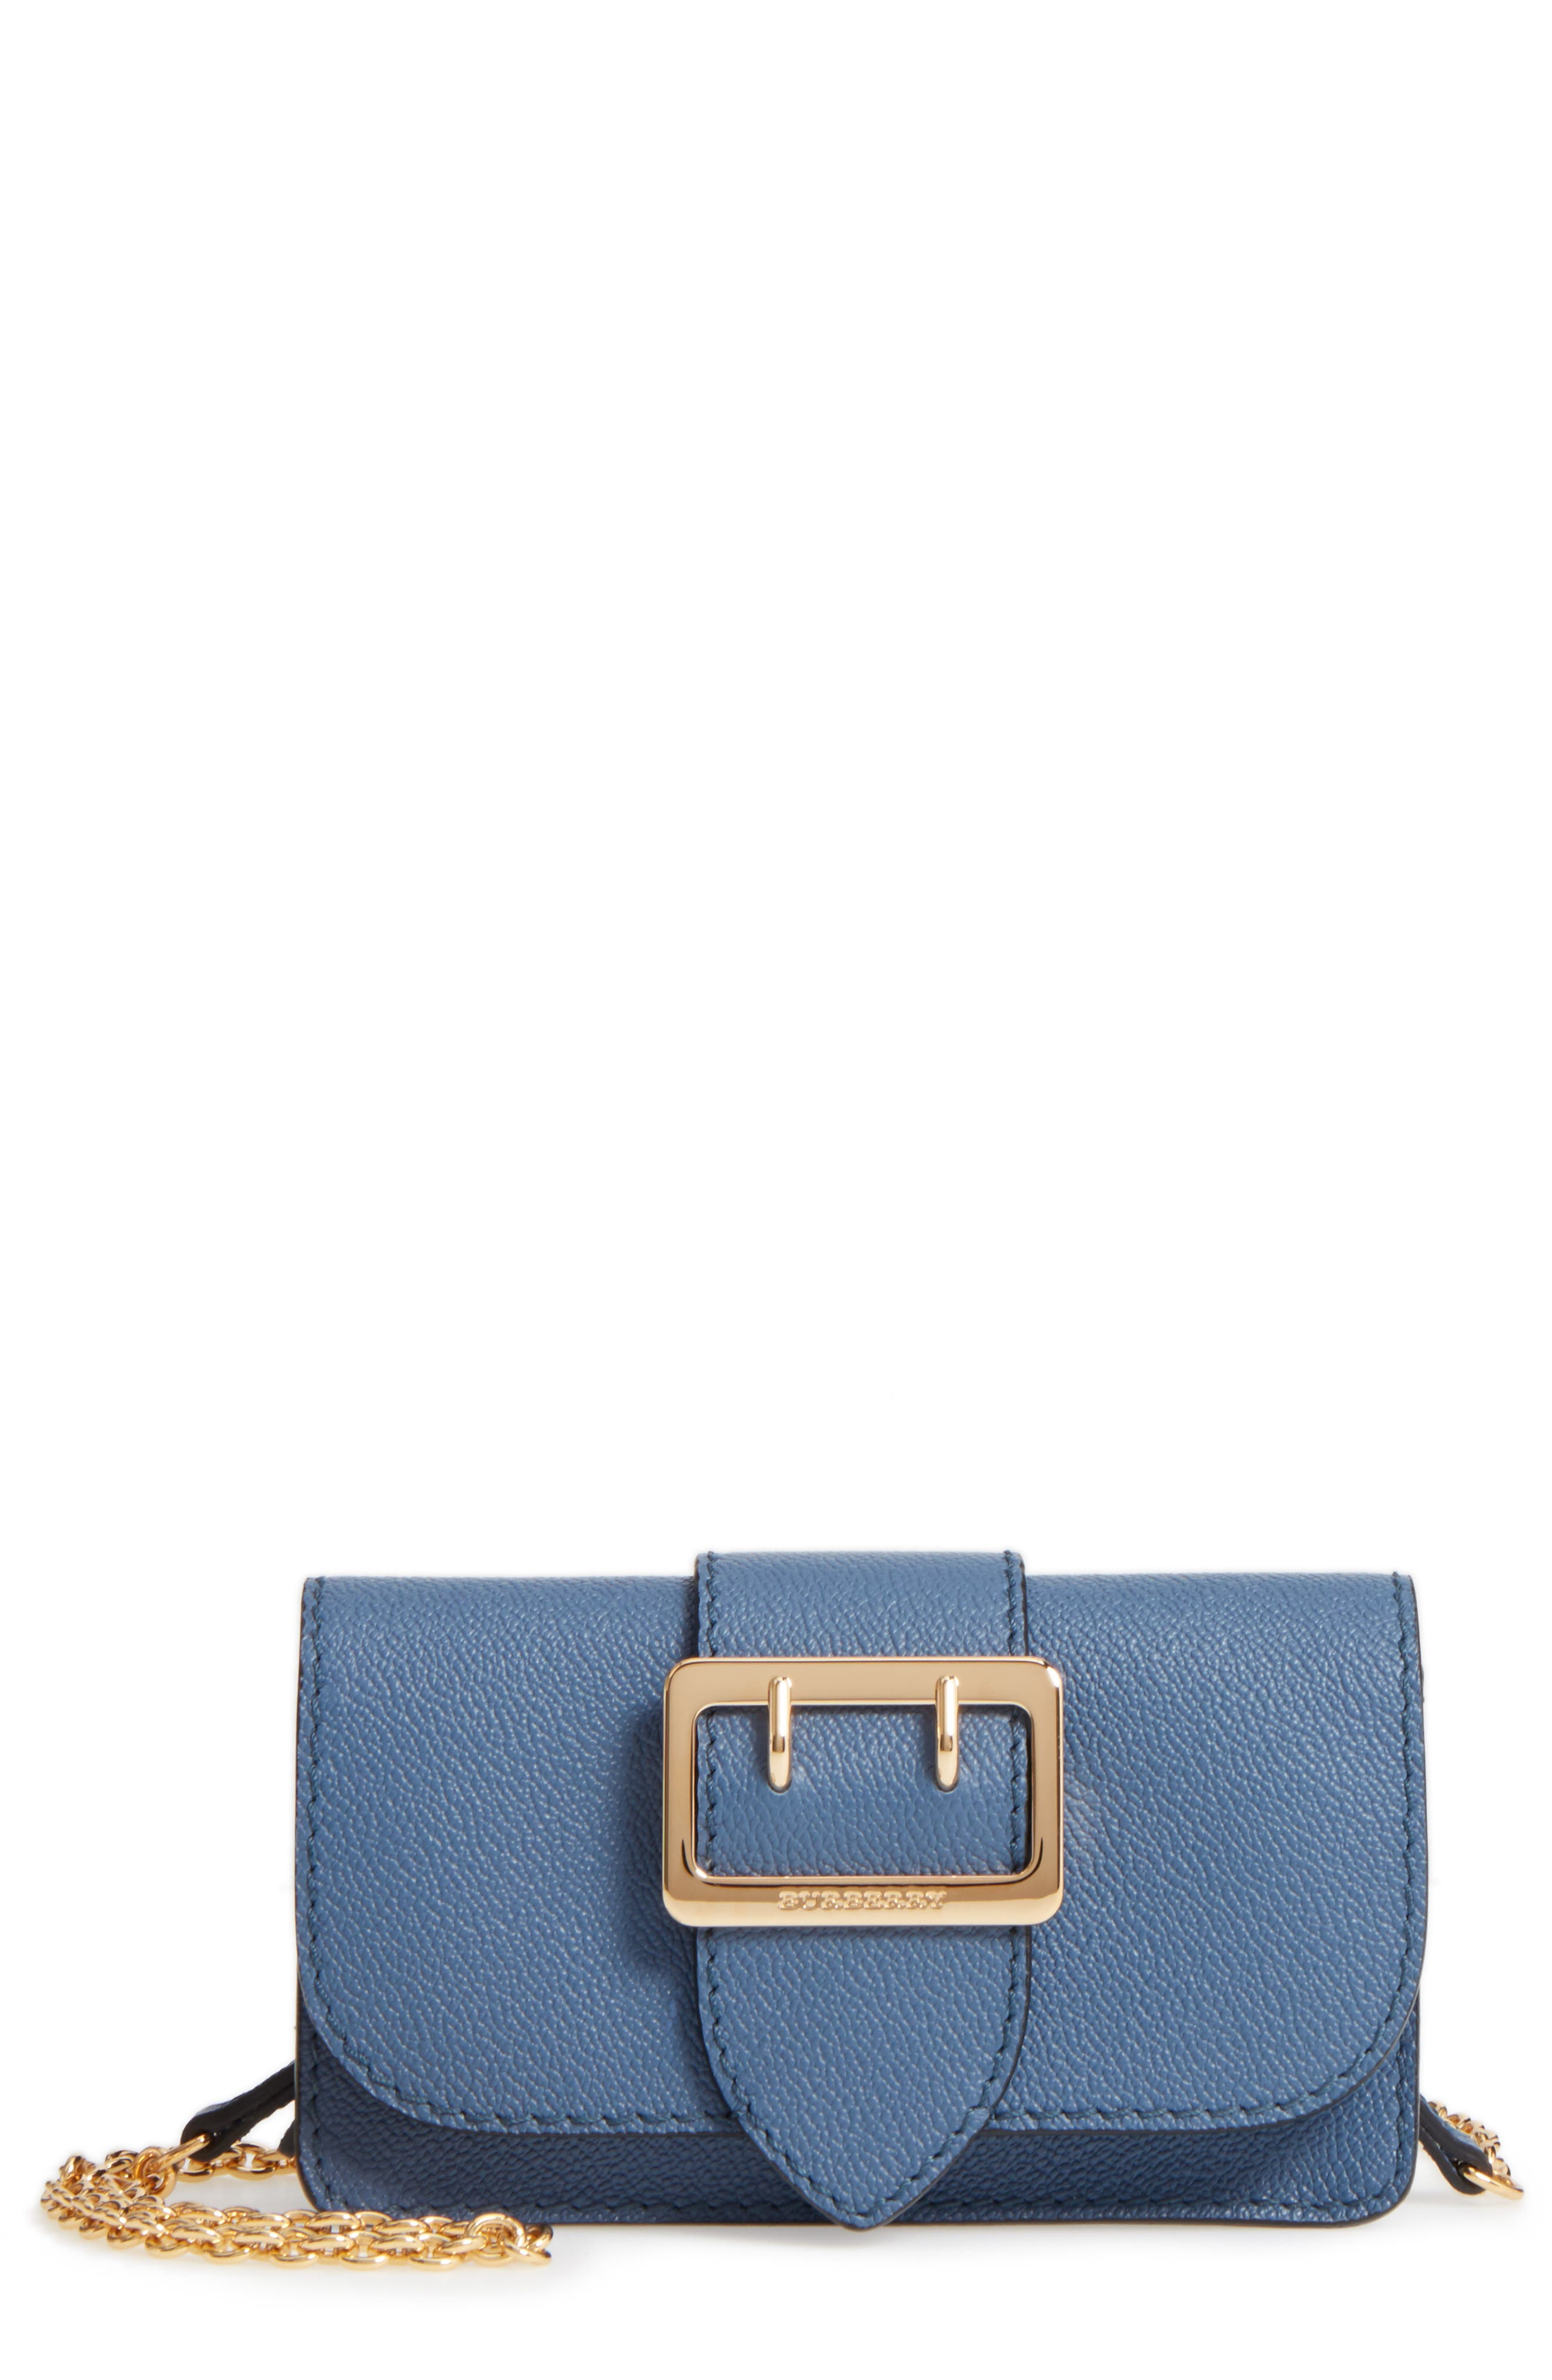 Burberry Mini Buckle Leather Bag